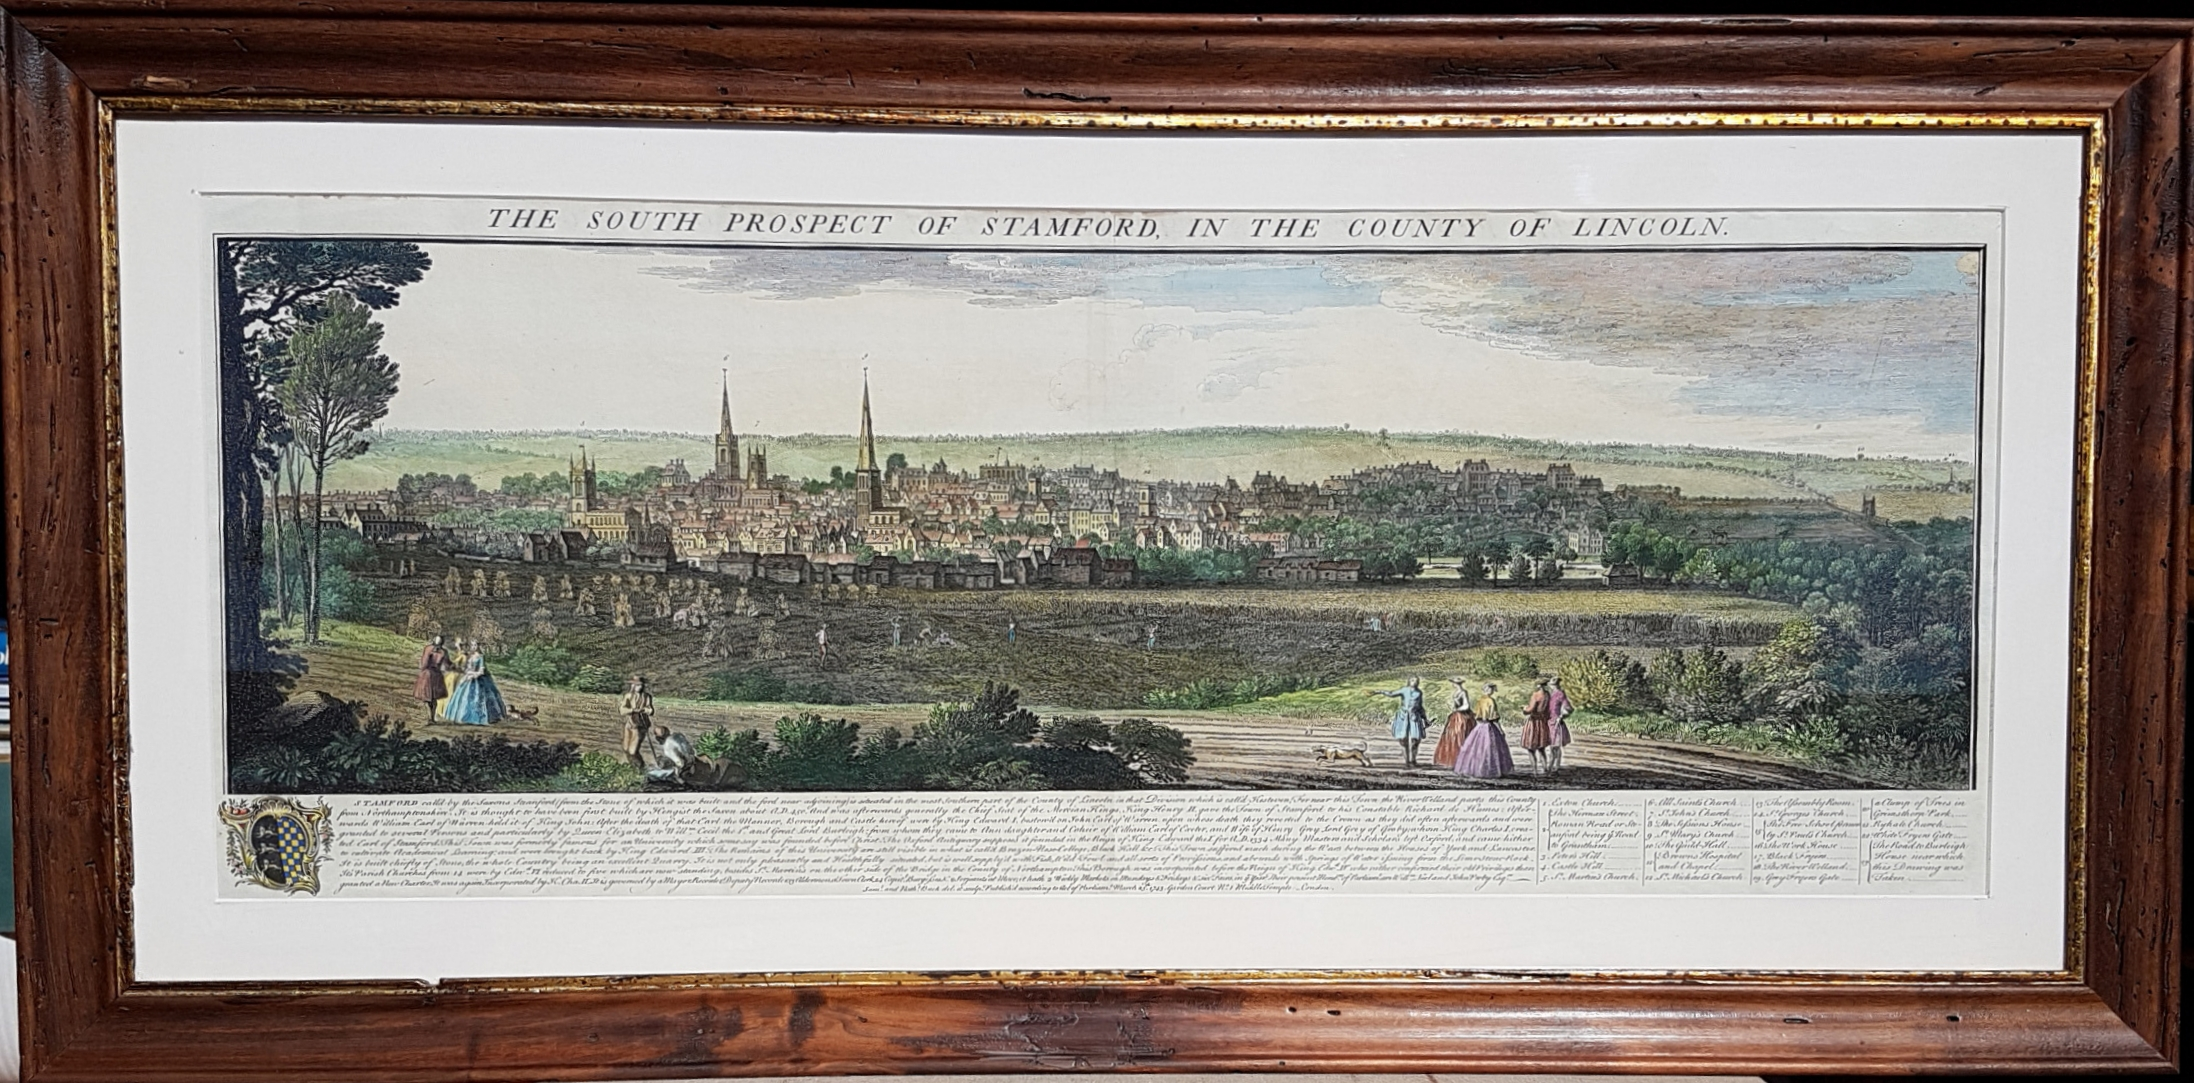 Framed. South Prospect of Stamford, County of Lincoln, c1743.